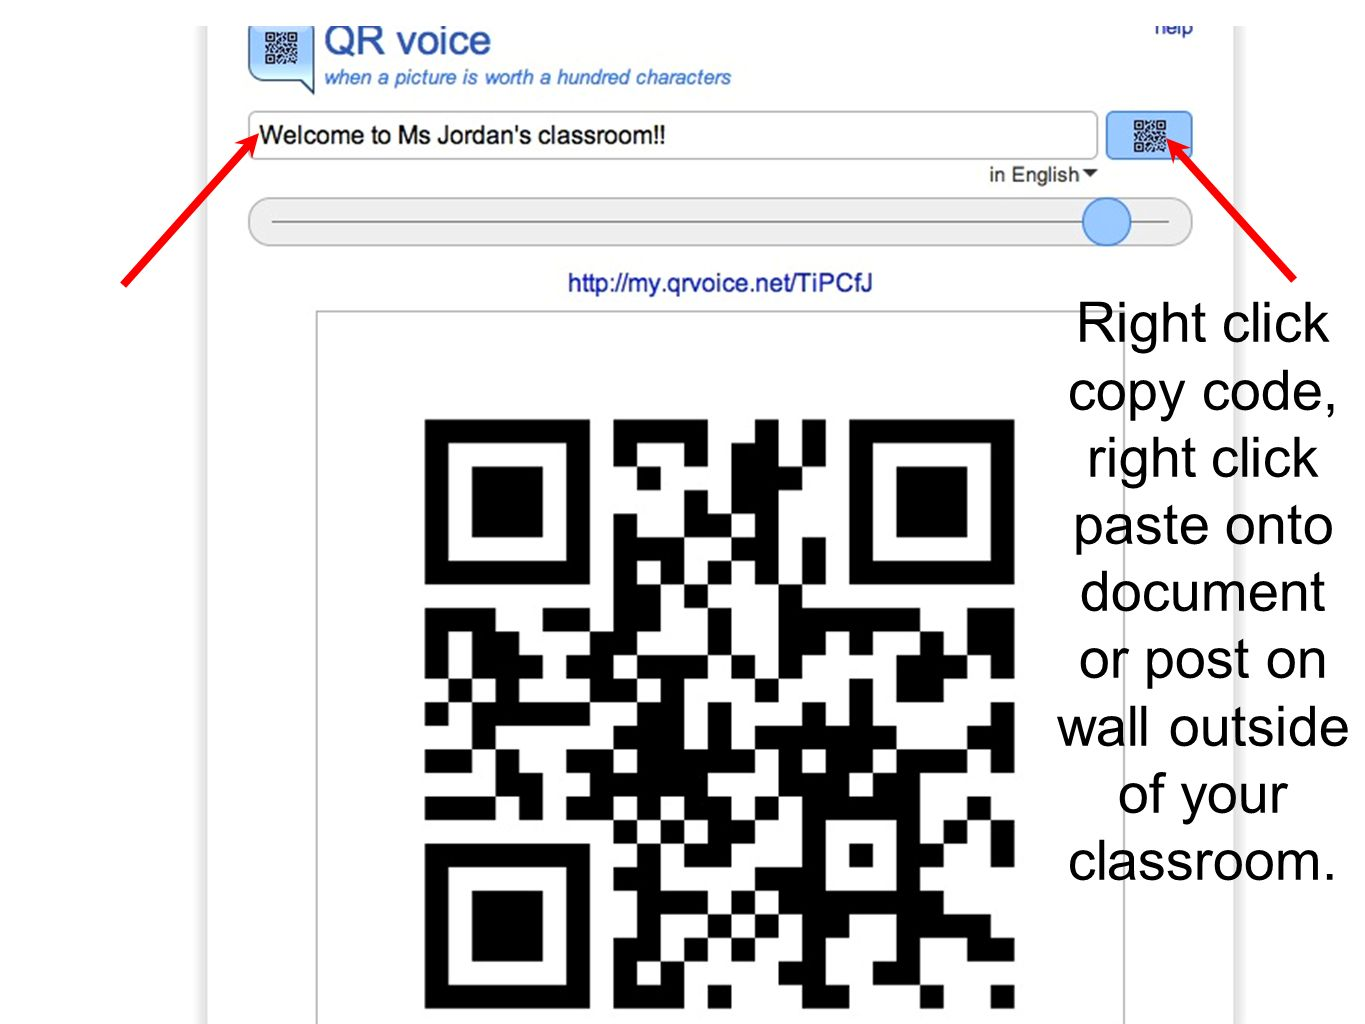 Right click copy code, right click paste onto document or post on wall outside of your classroom.